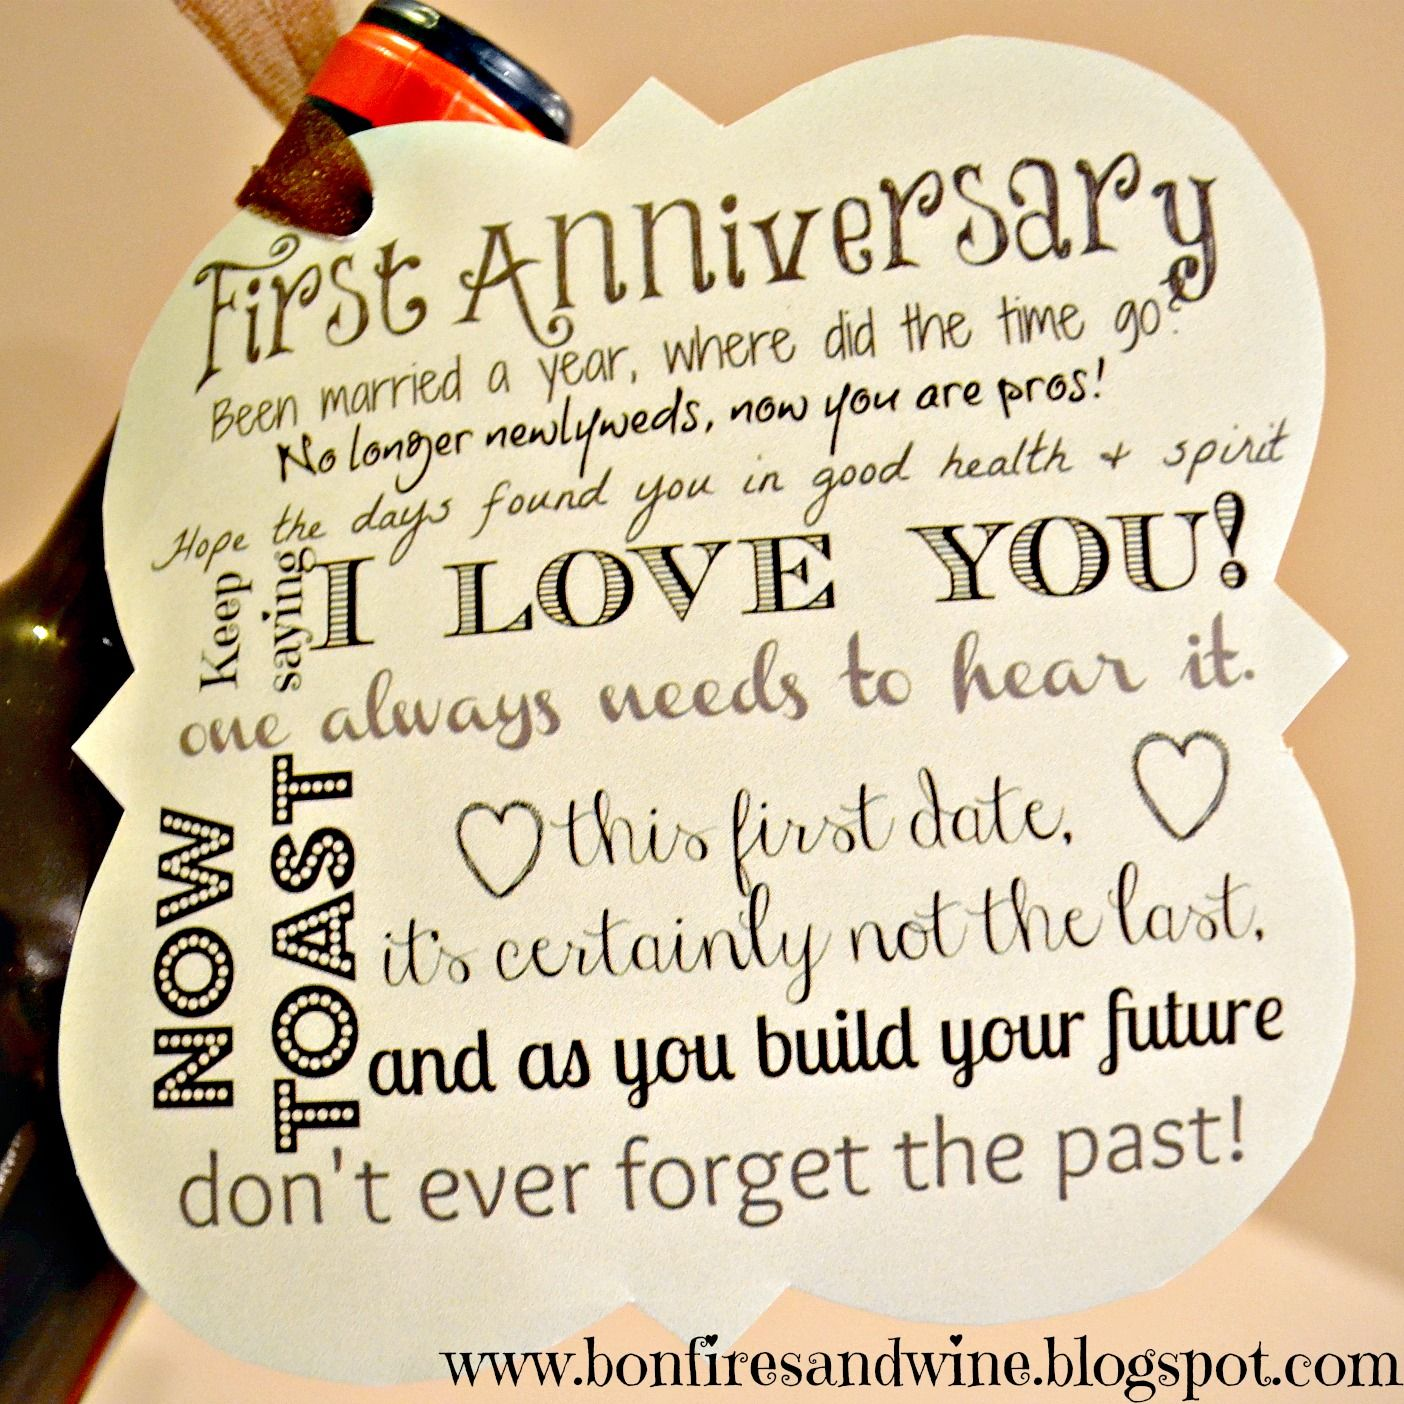 Wedding Gifts For 8 Year Anniversary : ... on pinterest paper anniversary gift ideas and first year gifts